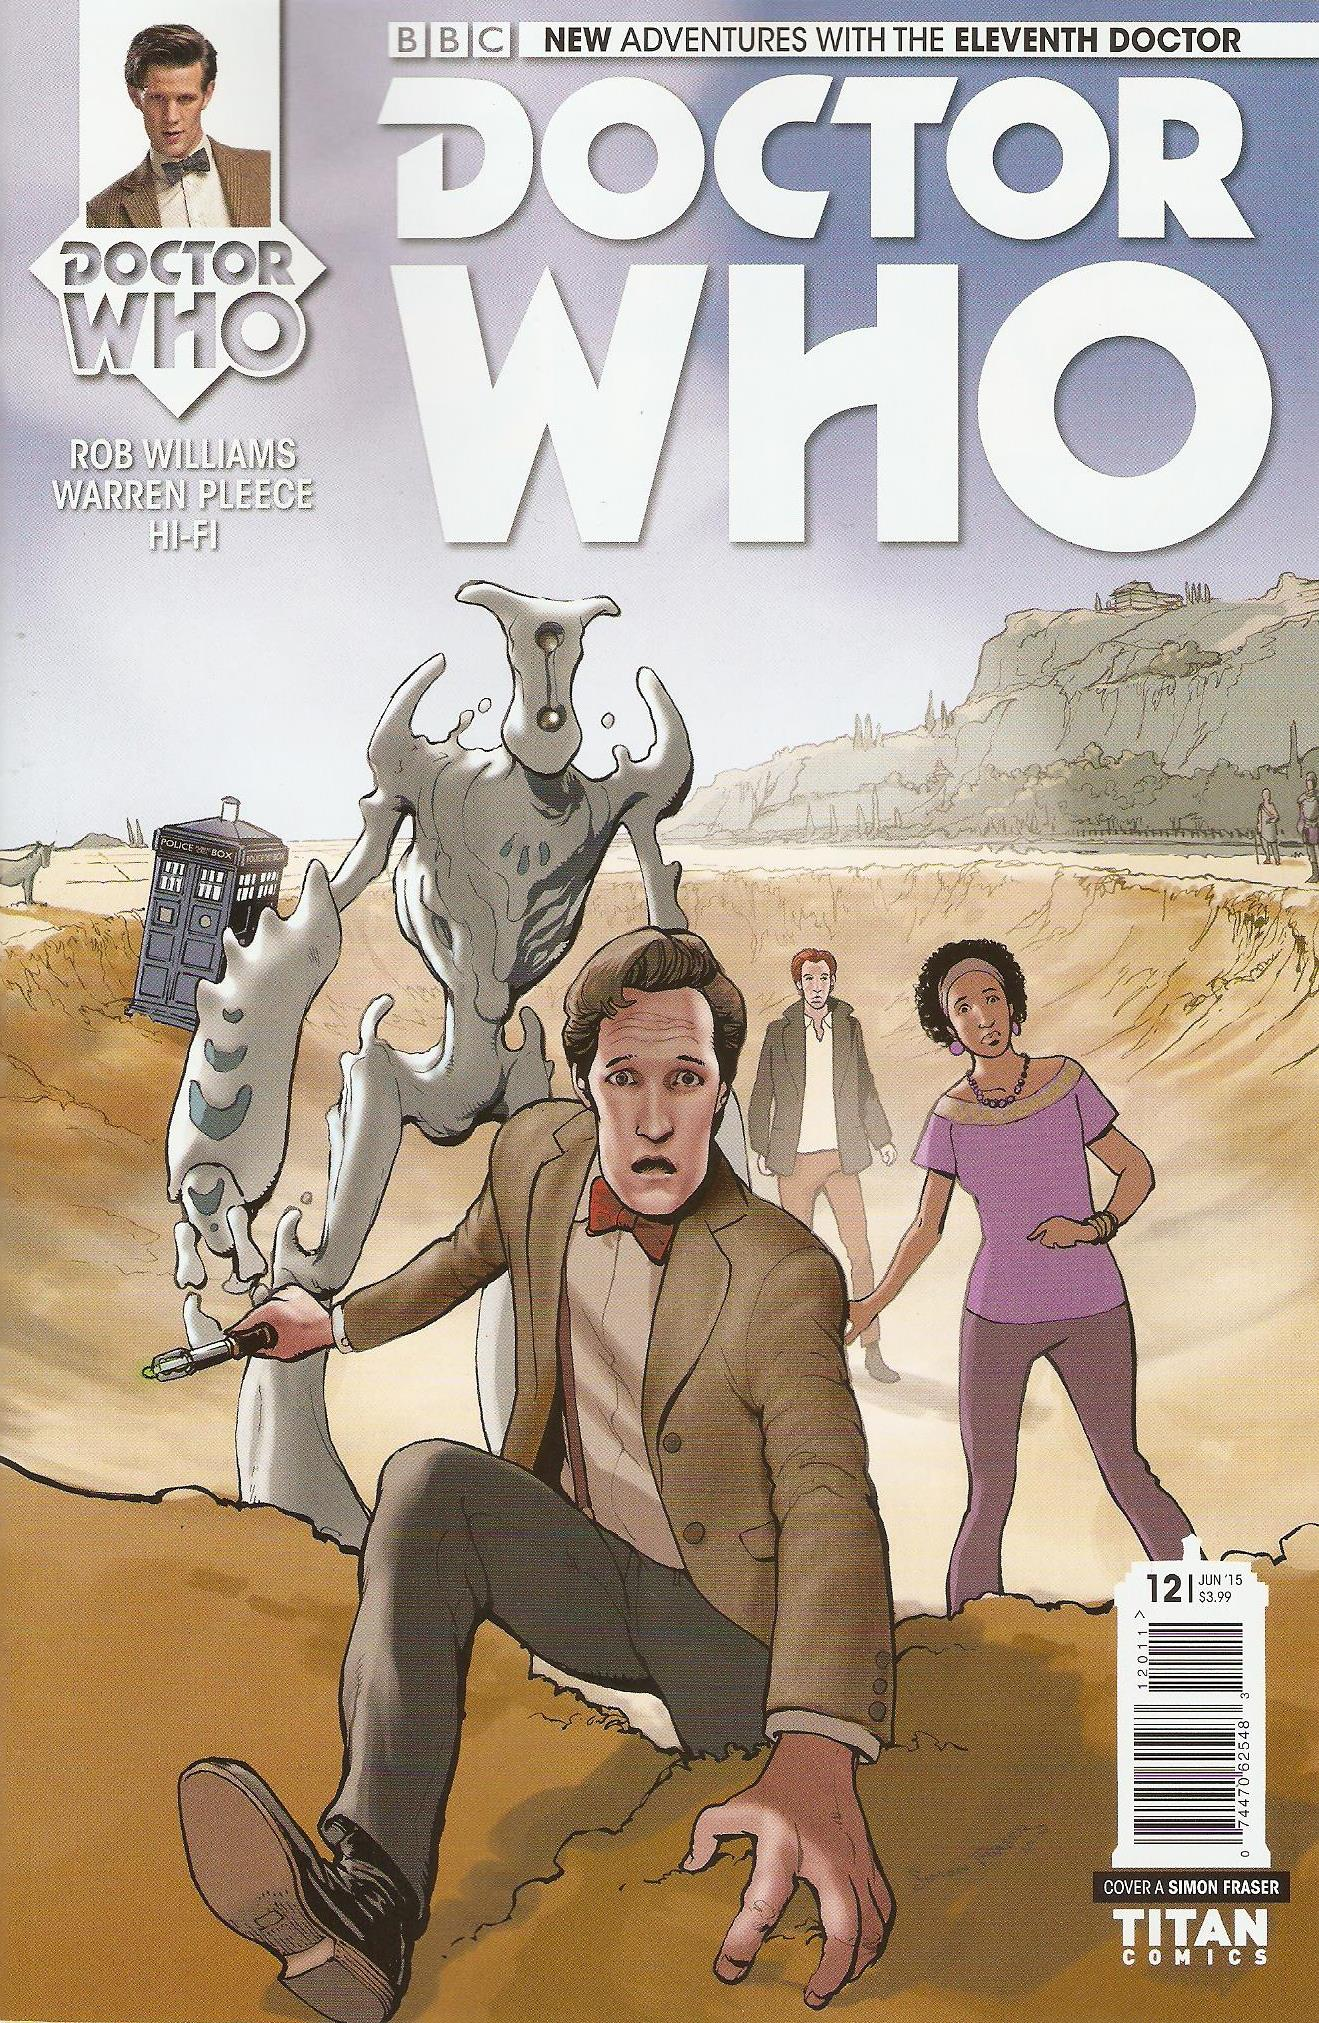 Eleventh doctor issue 12a